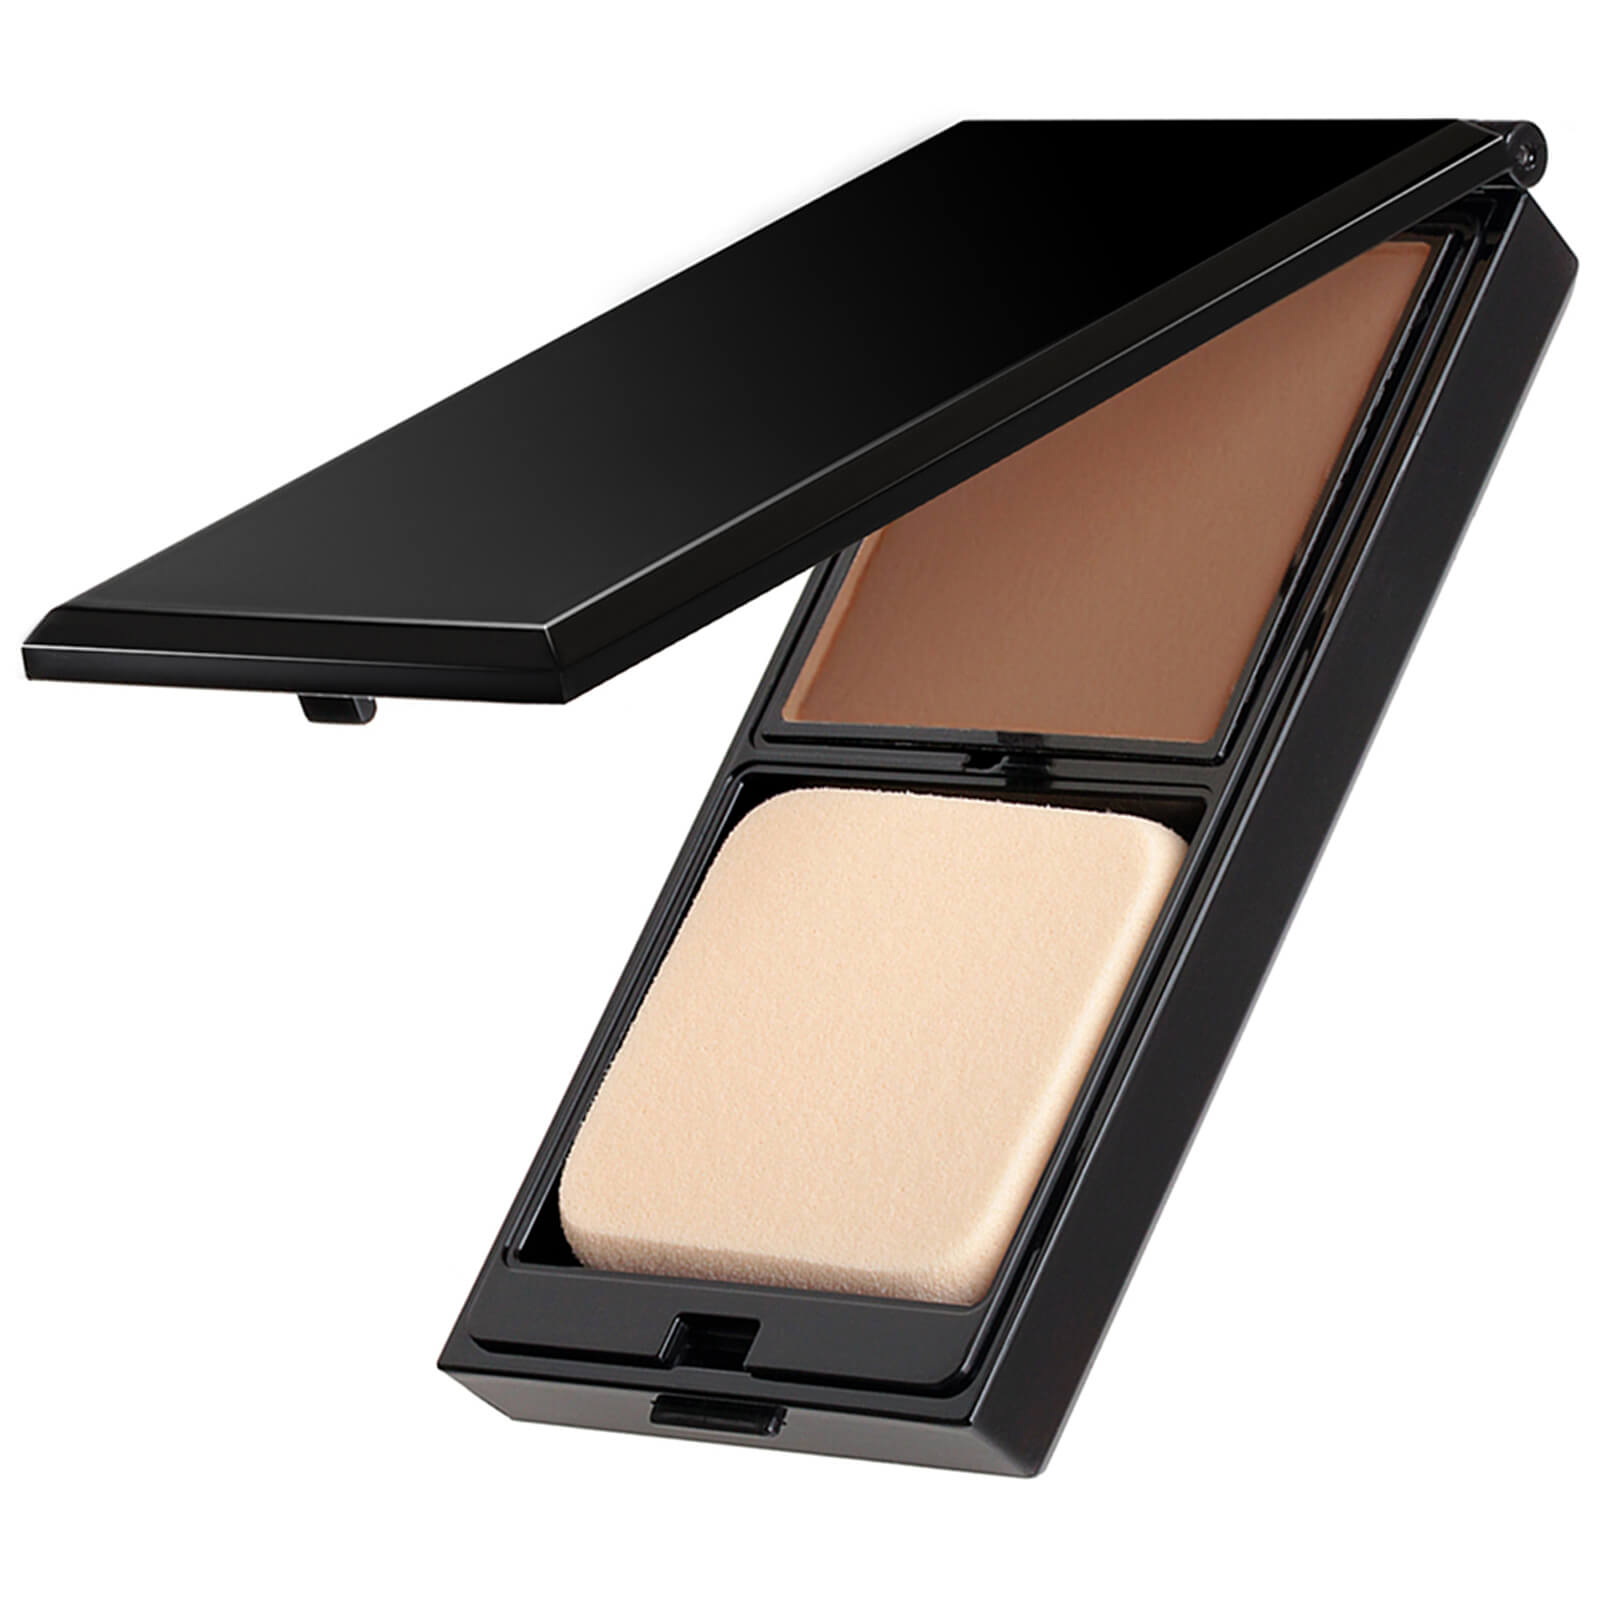 Serge Lutens Compact Foundation Teint si Fin 8g (Various Shades) - D10